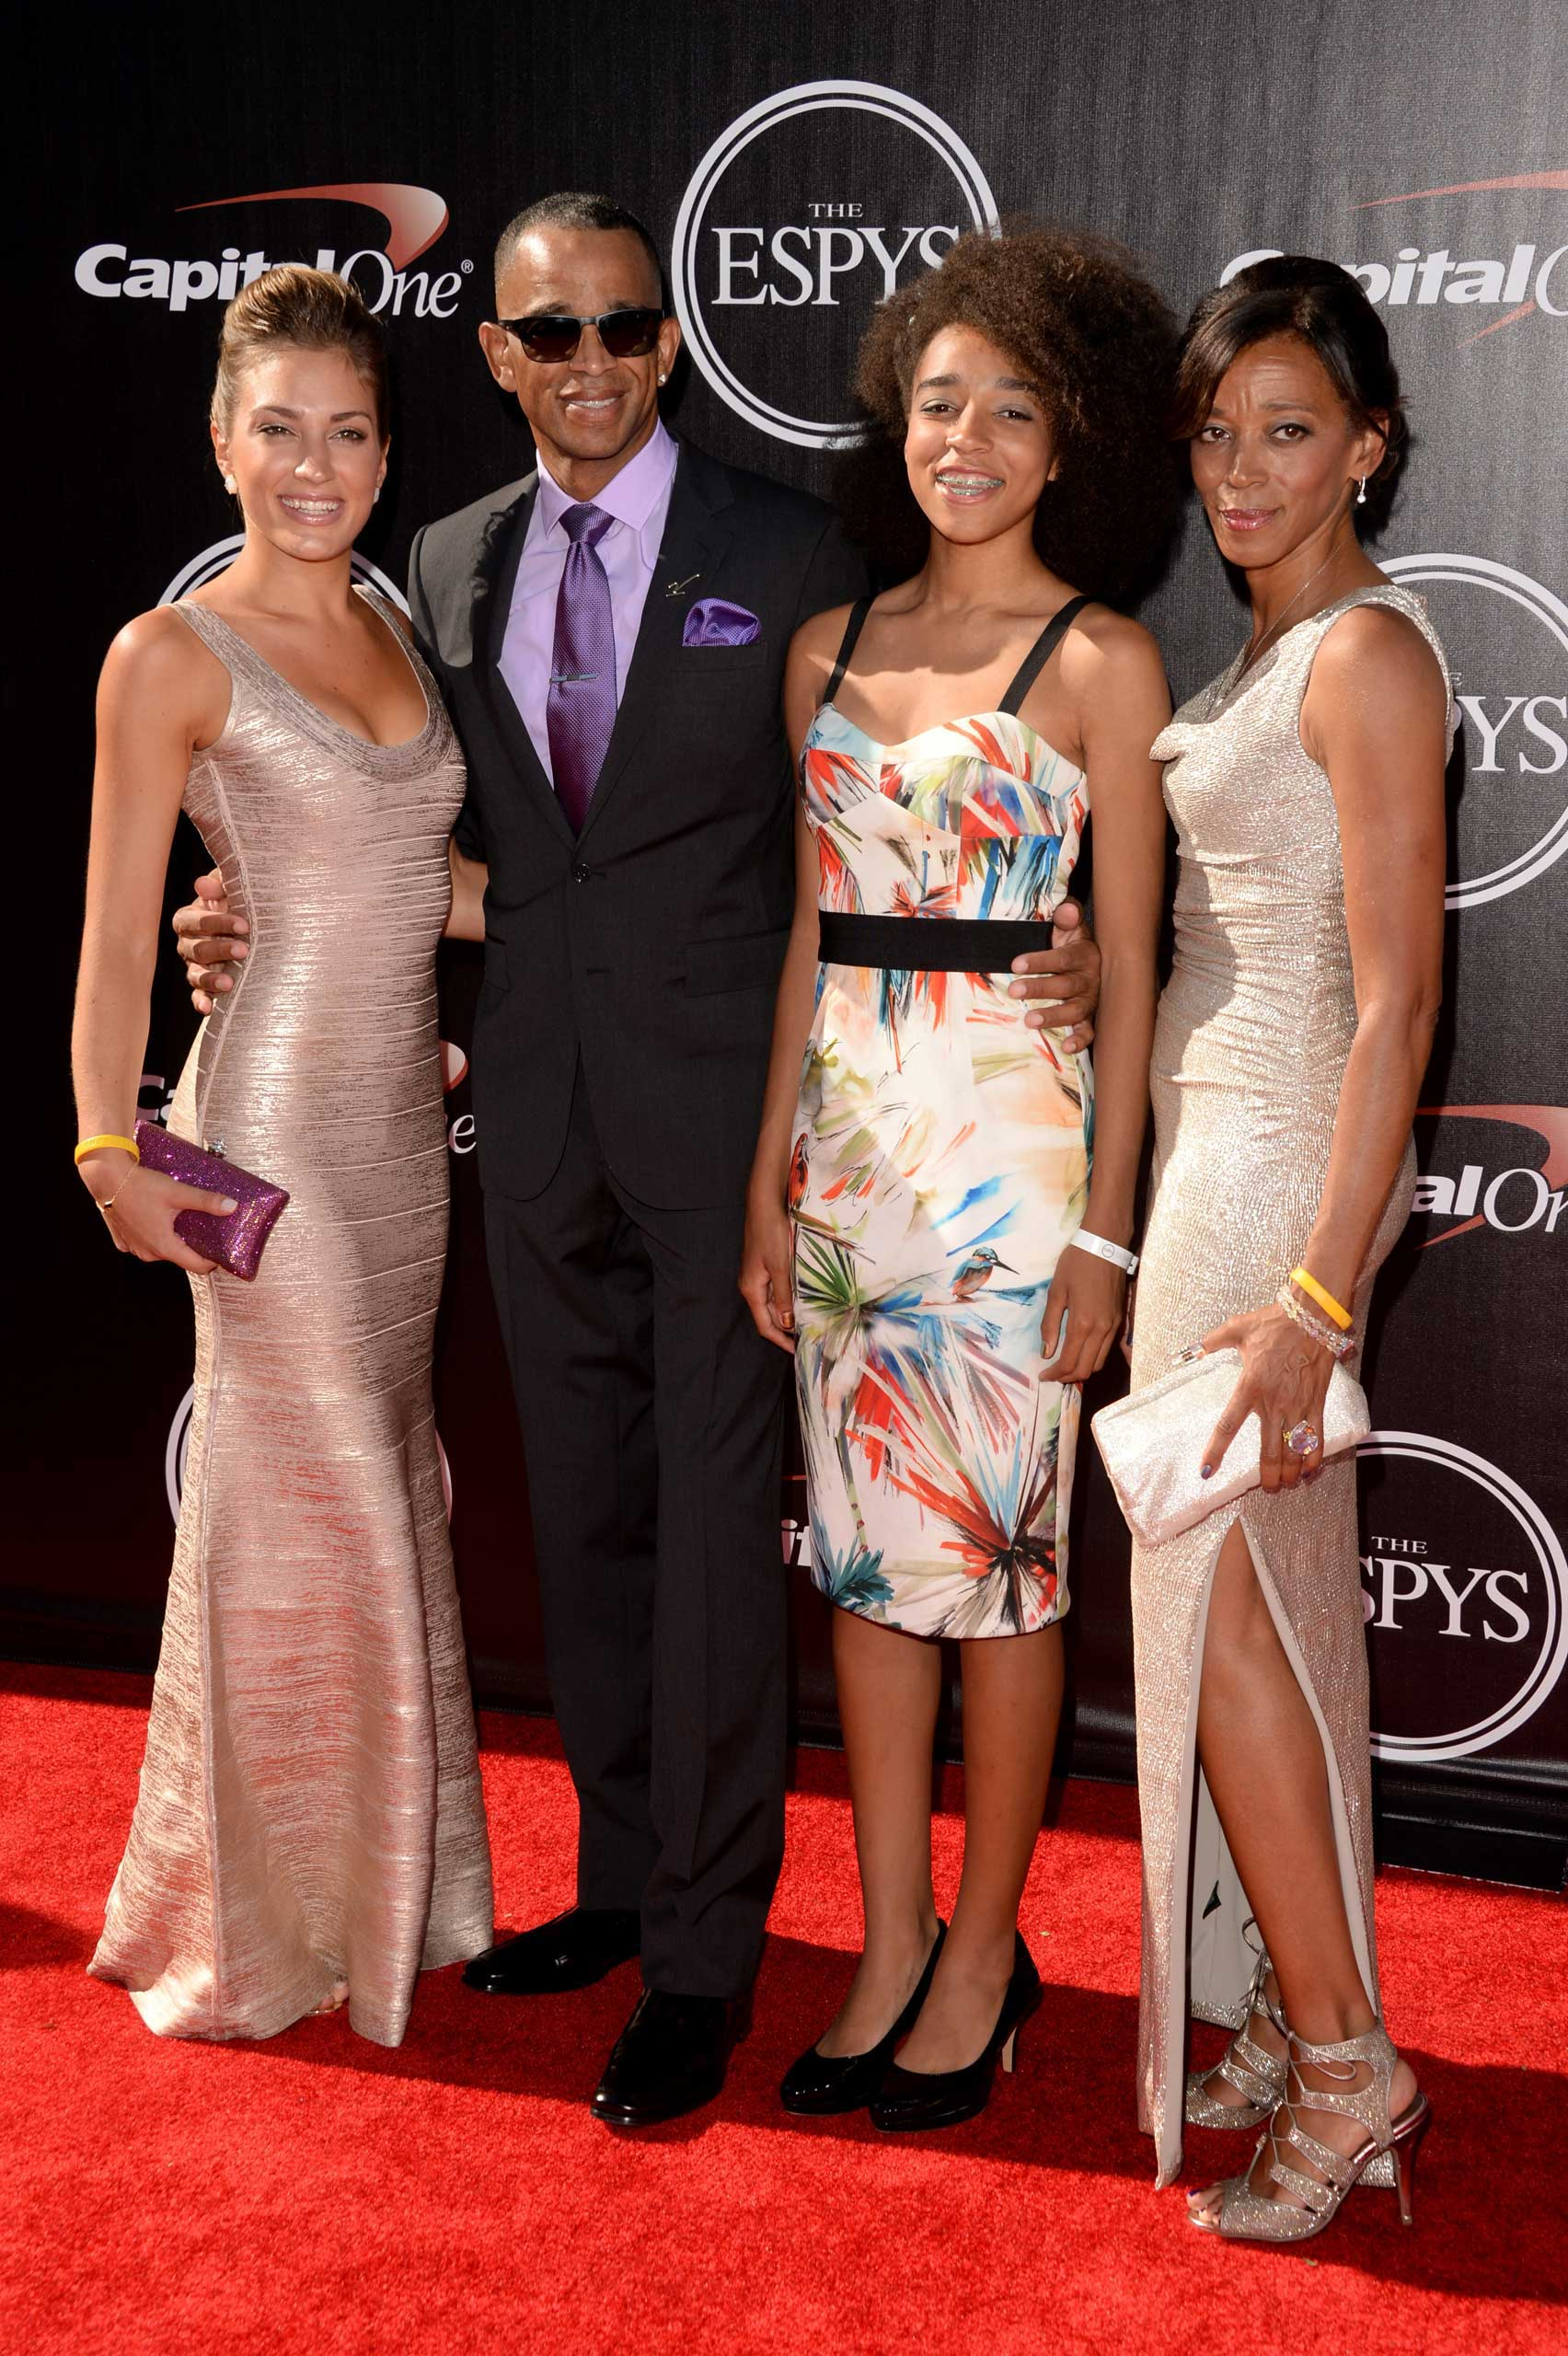 From Left: Kristin Spodobalski, Stuart Scott and Sydni Scott attend The 2014 ESPYS at Nokia Theatre L.A. Live on July 16, 2014 in Los Angeles.